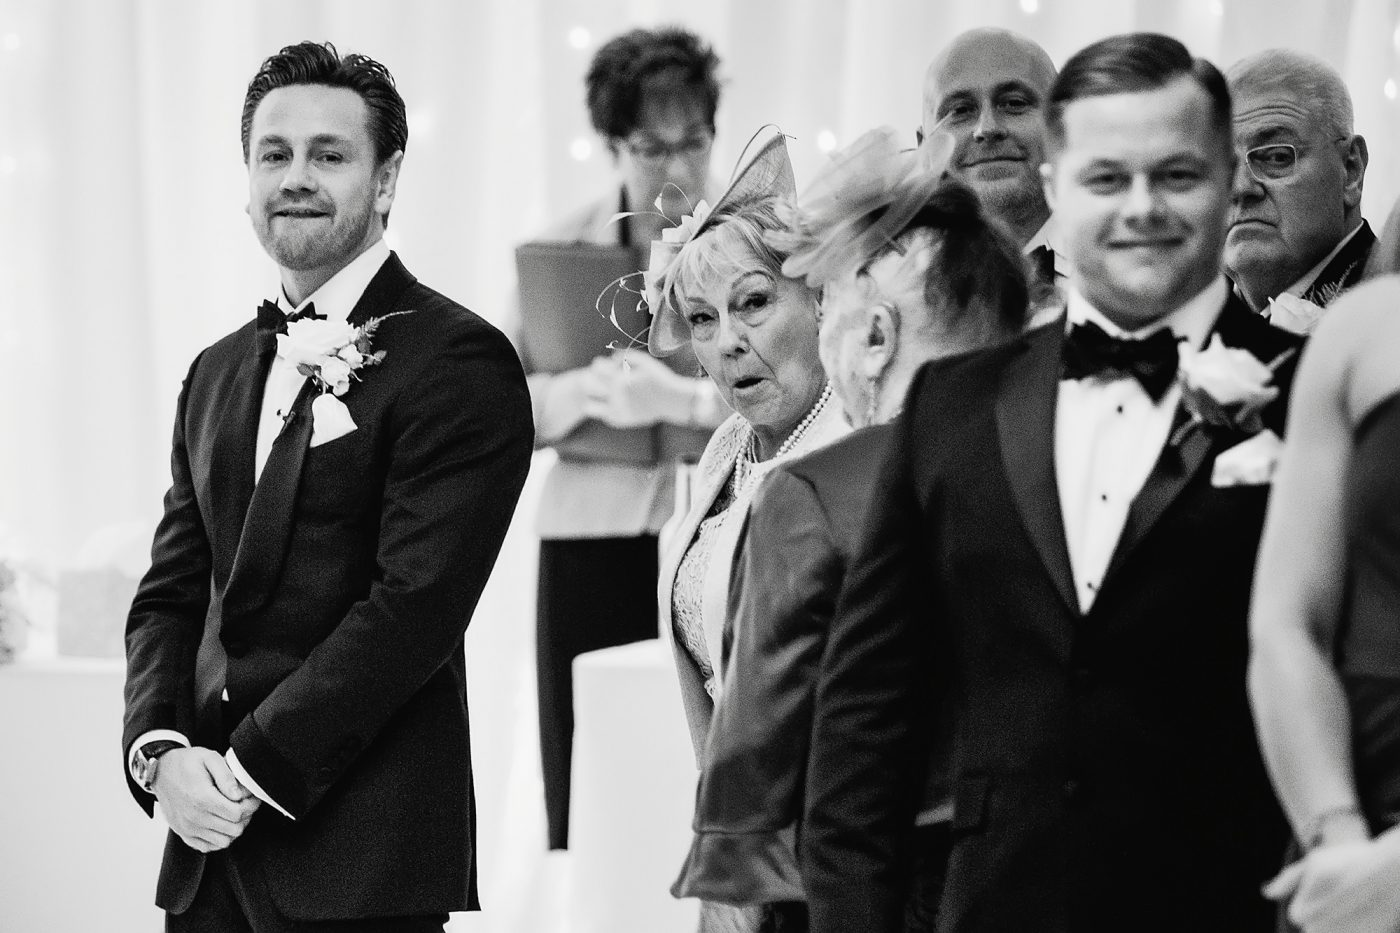 grooms reaction when he sees his fiance